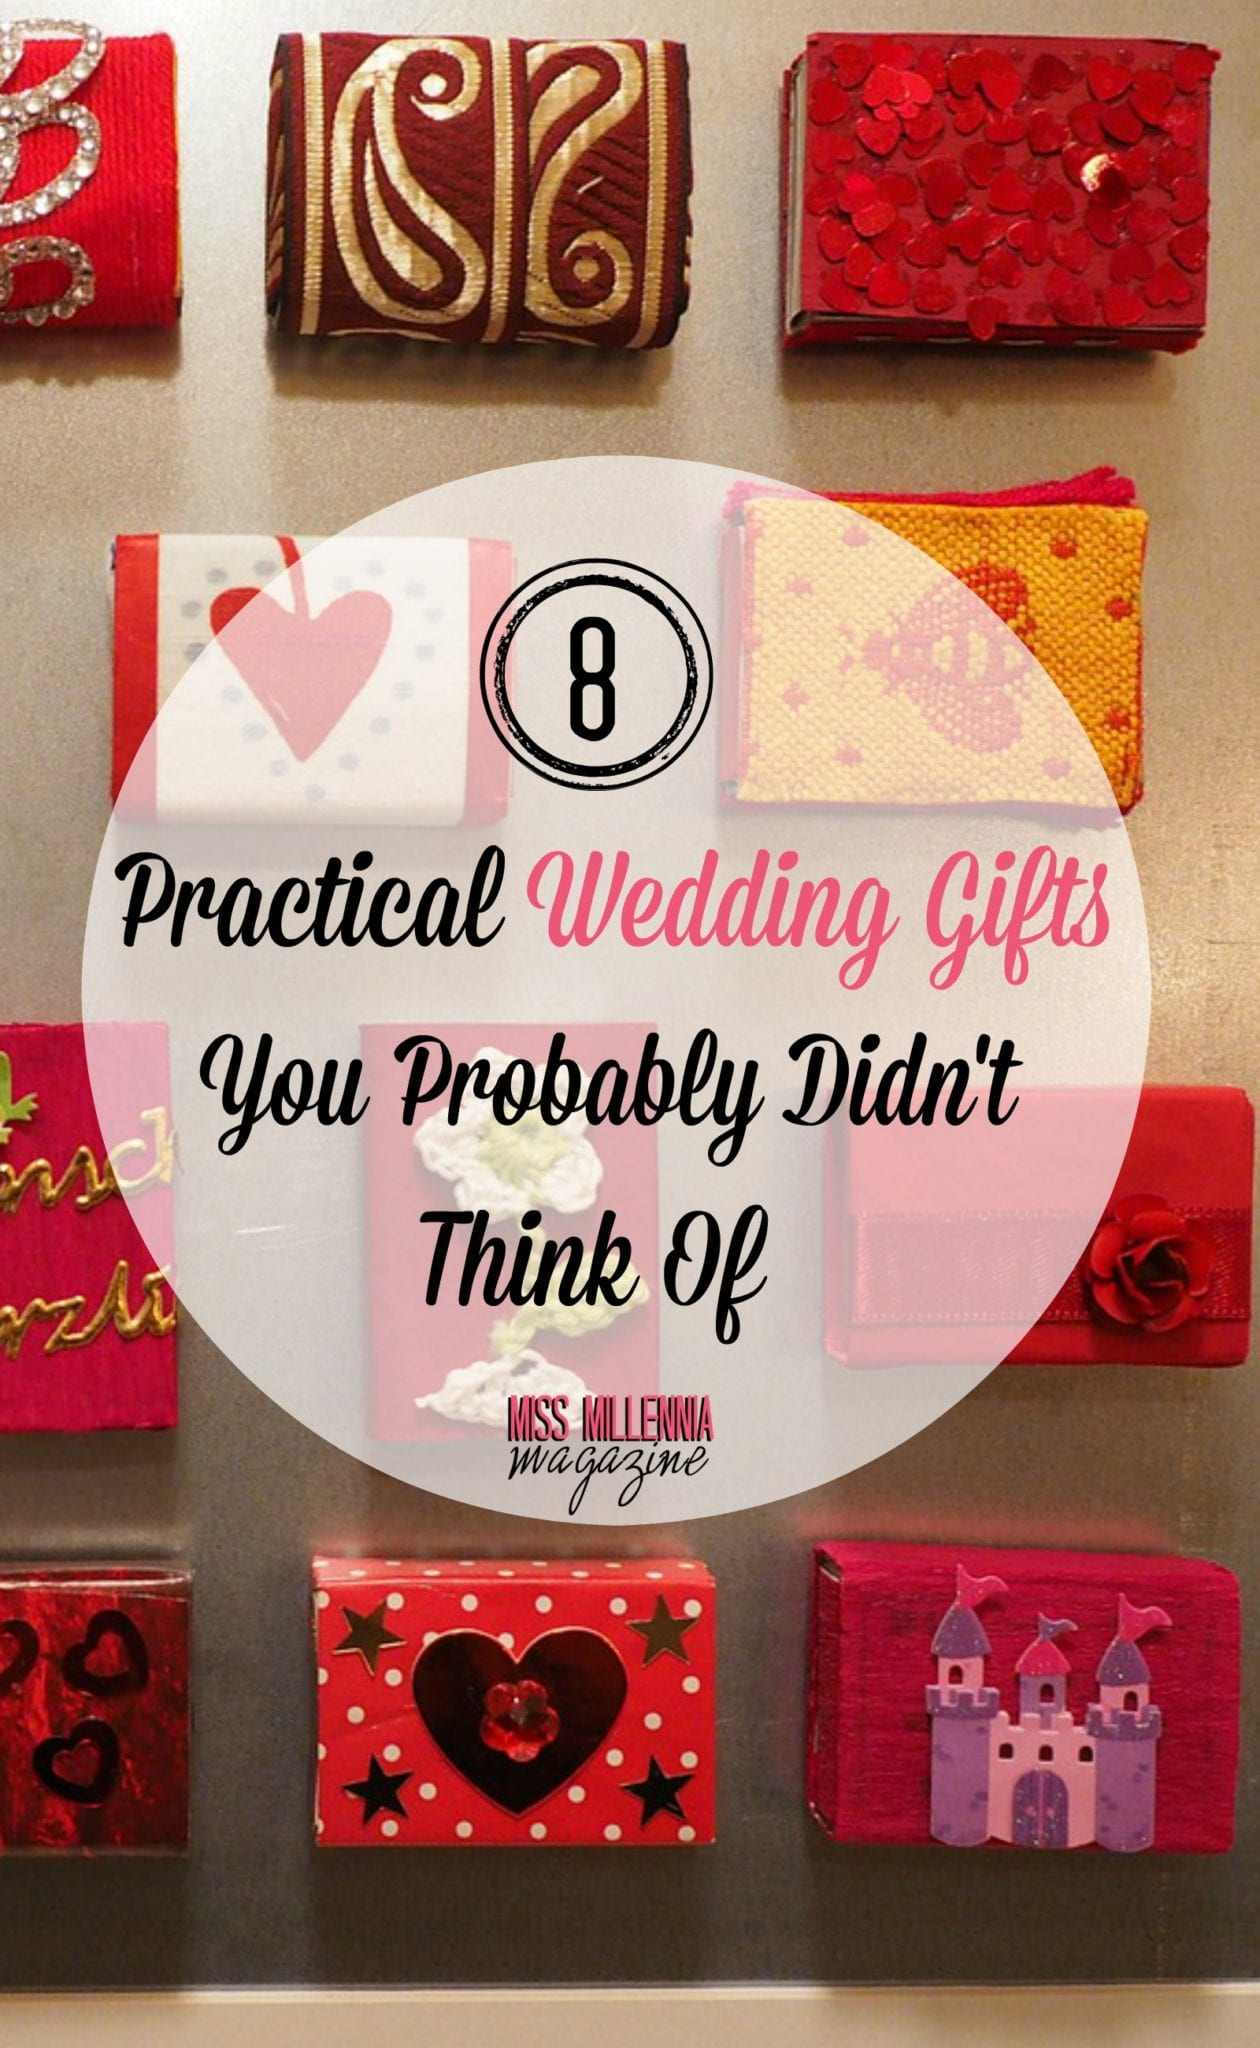 8 Practical Wedding Gifts You Probably Didn't Think Of